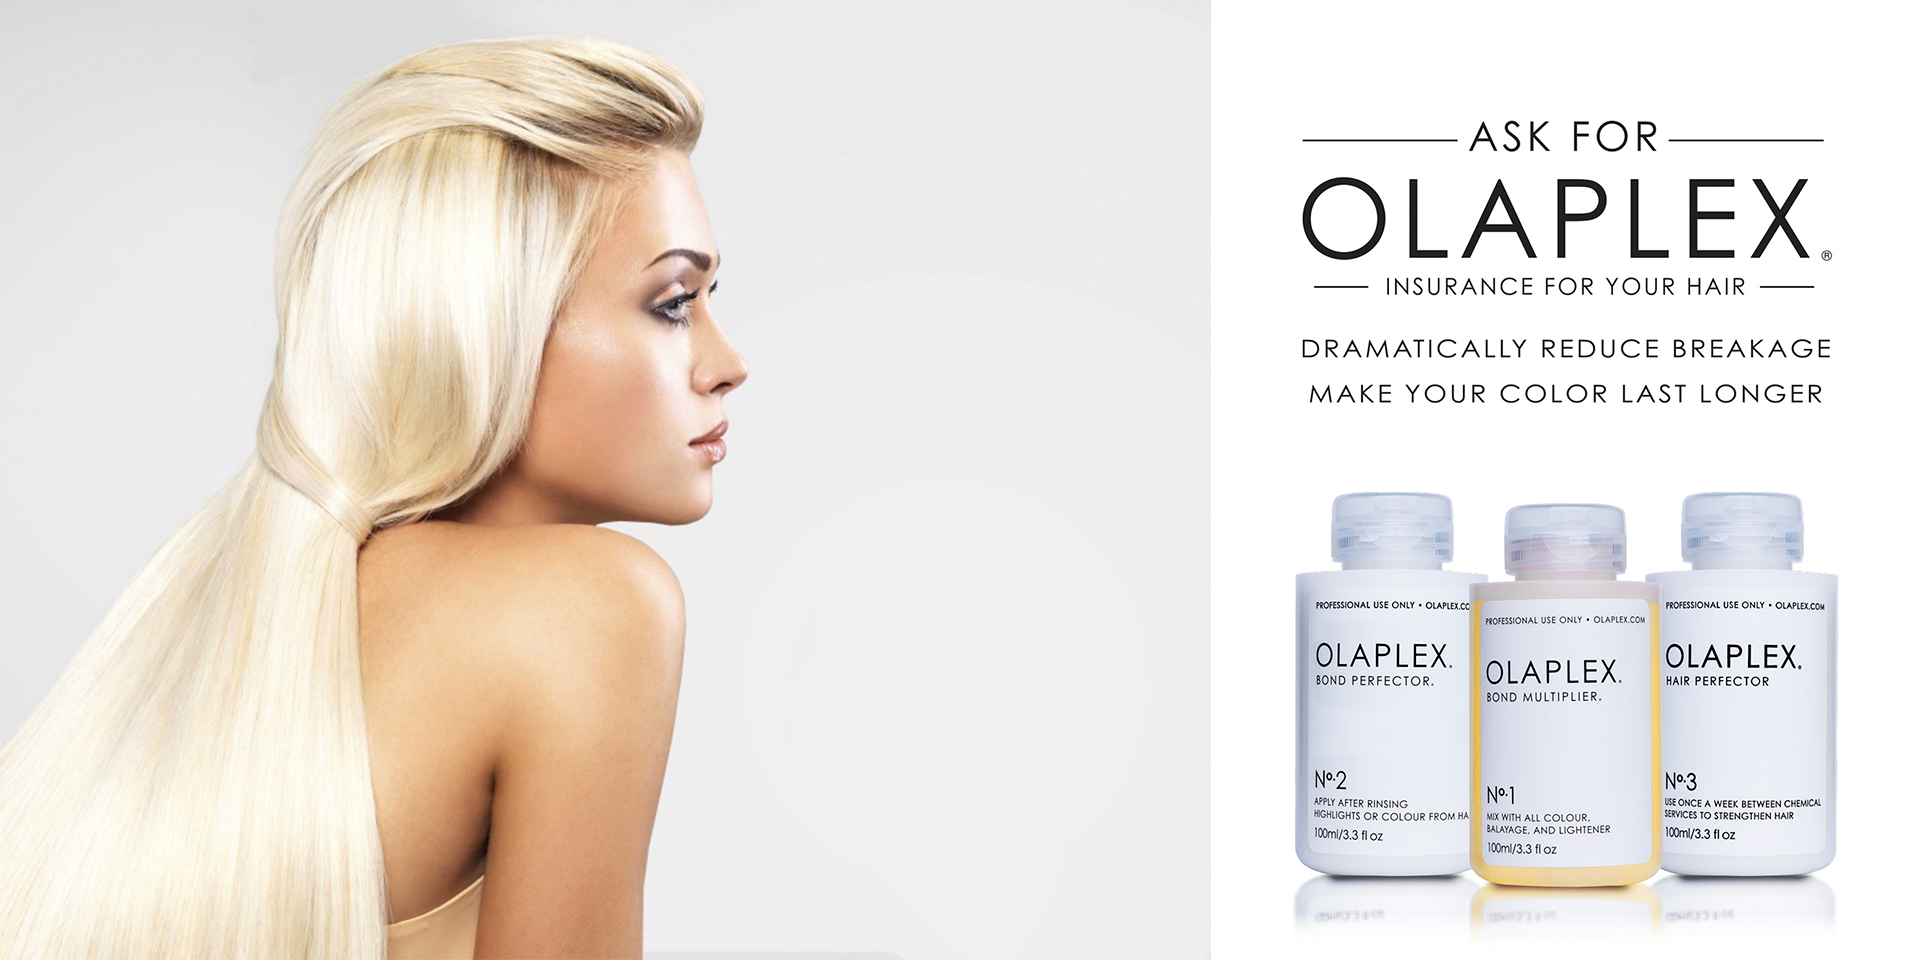 What is the Olaplex hair treatment and how does it work